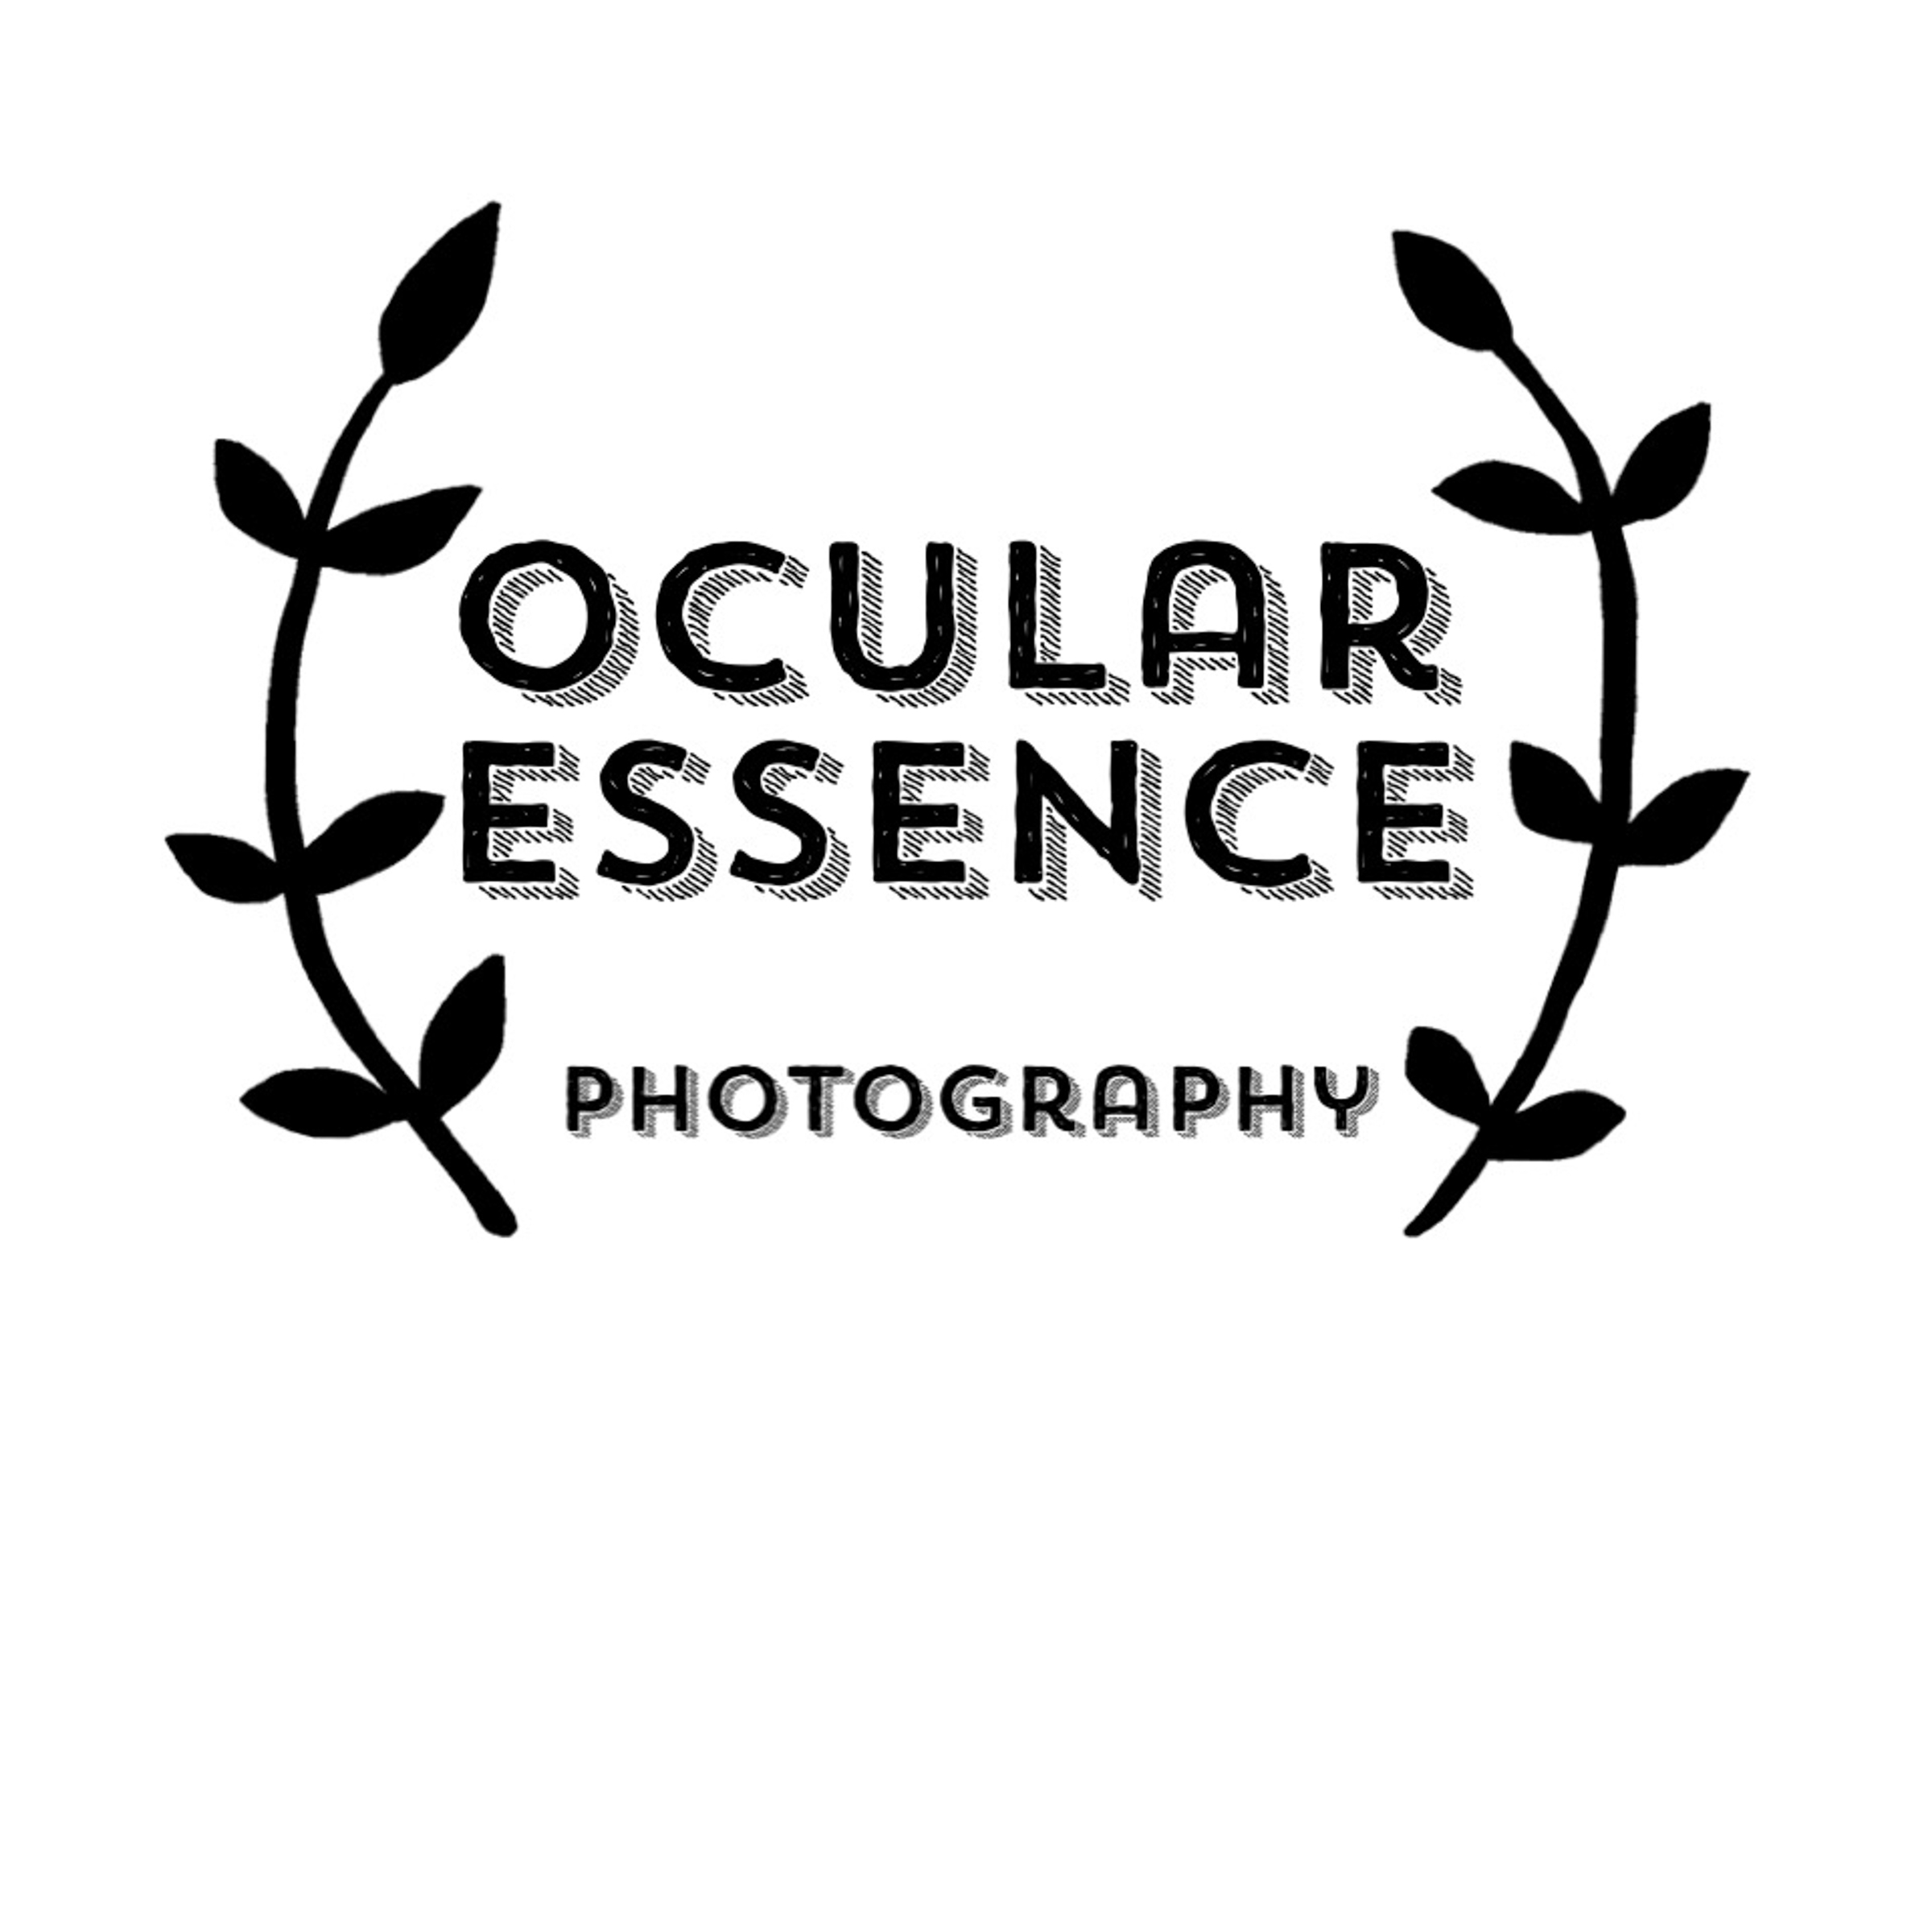 Ocular Essence Photography